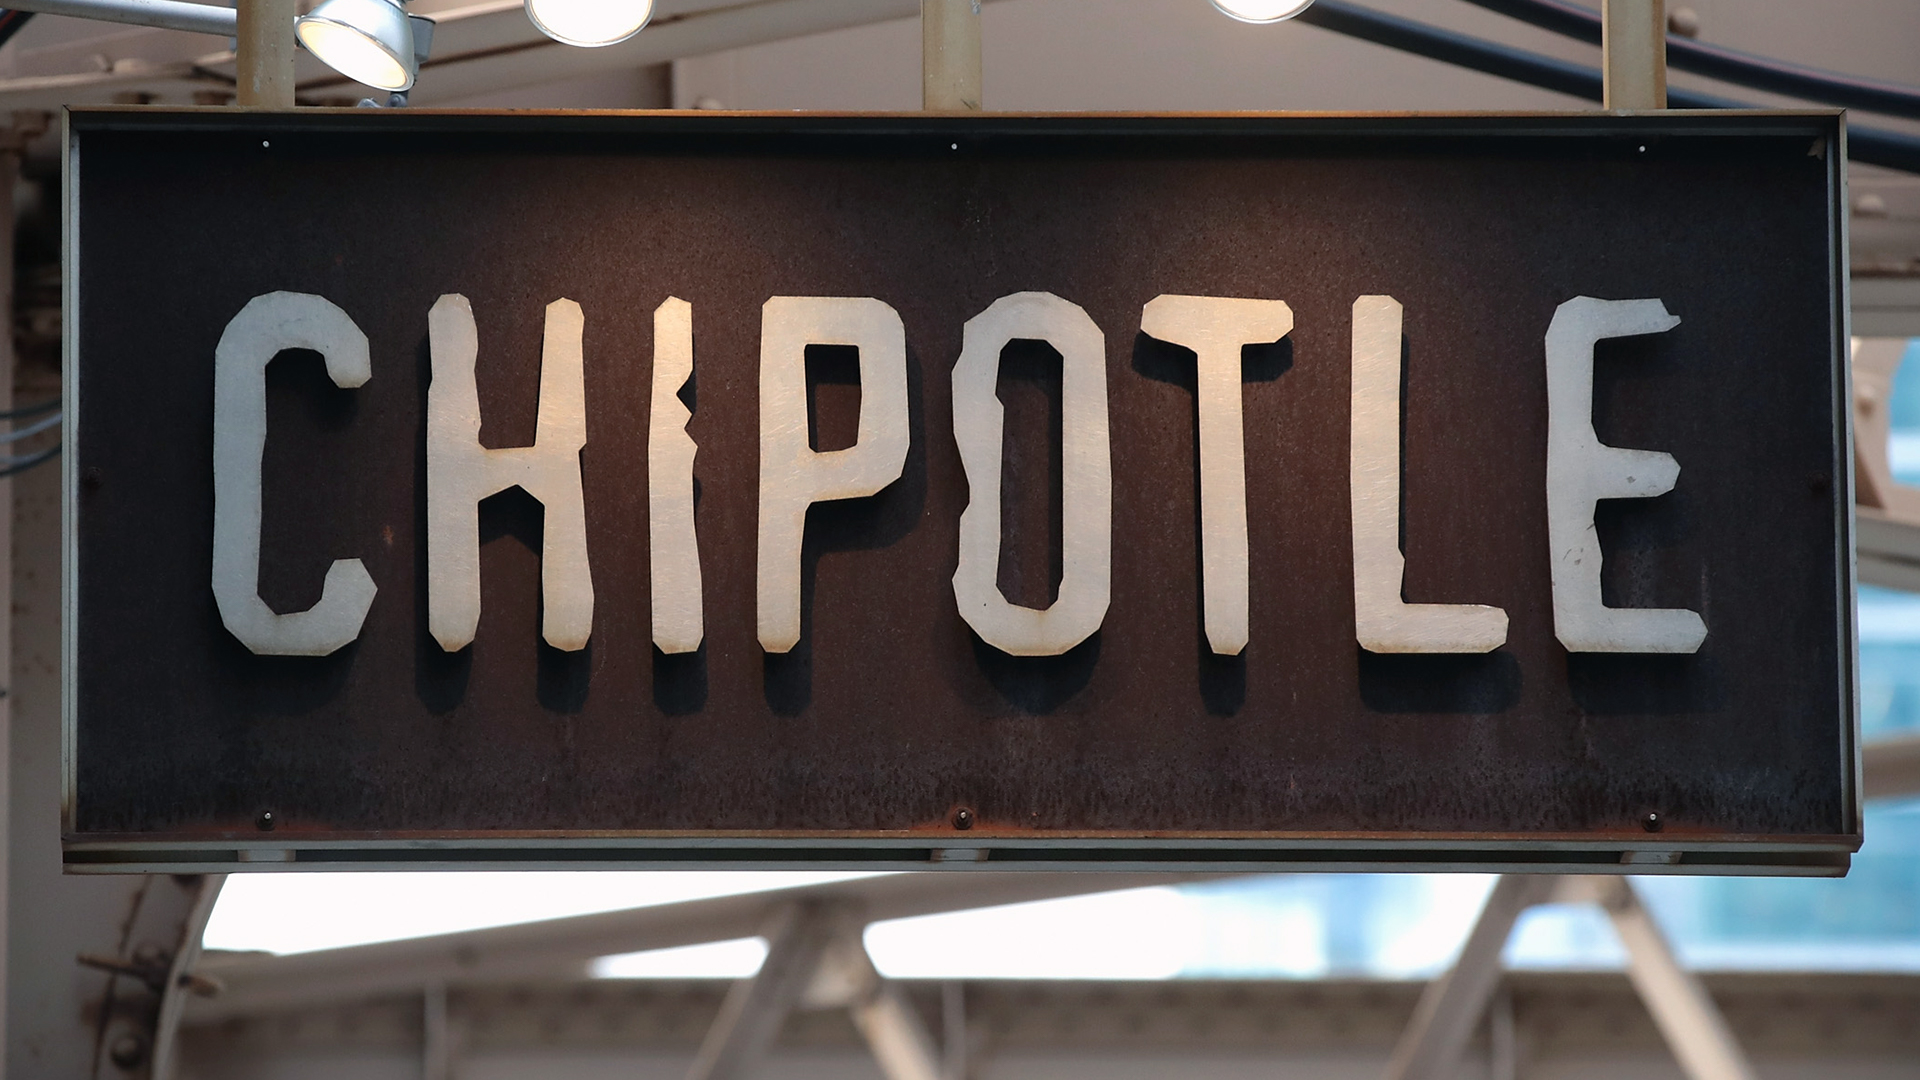 Chipotle sign-159532.jpg67673141